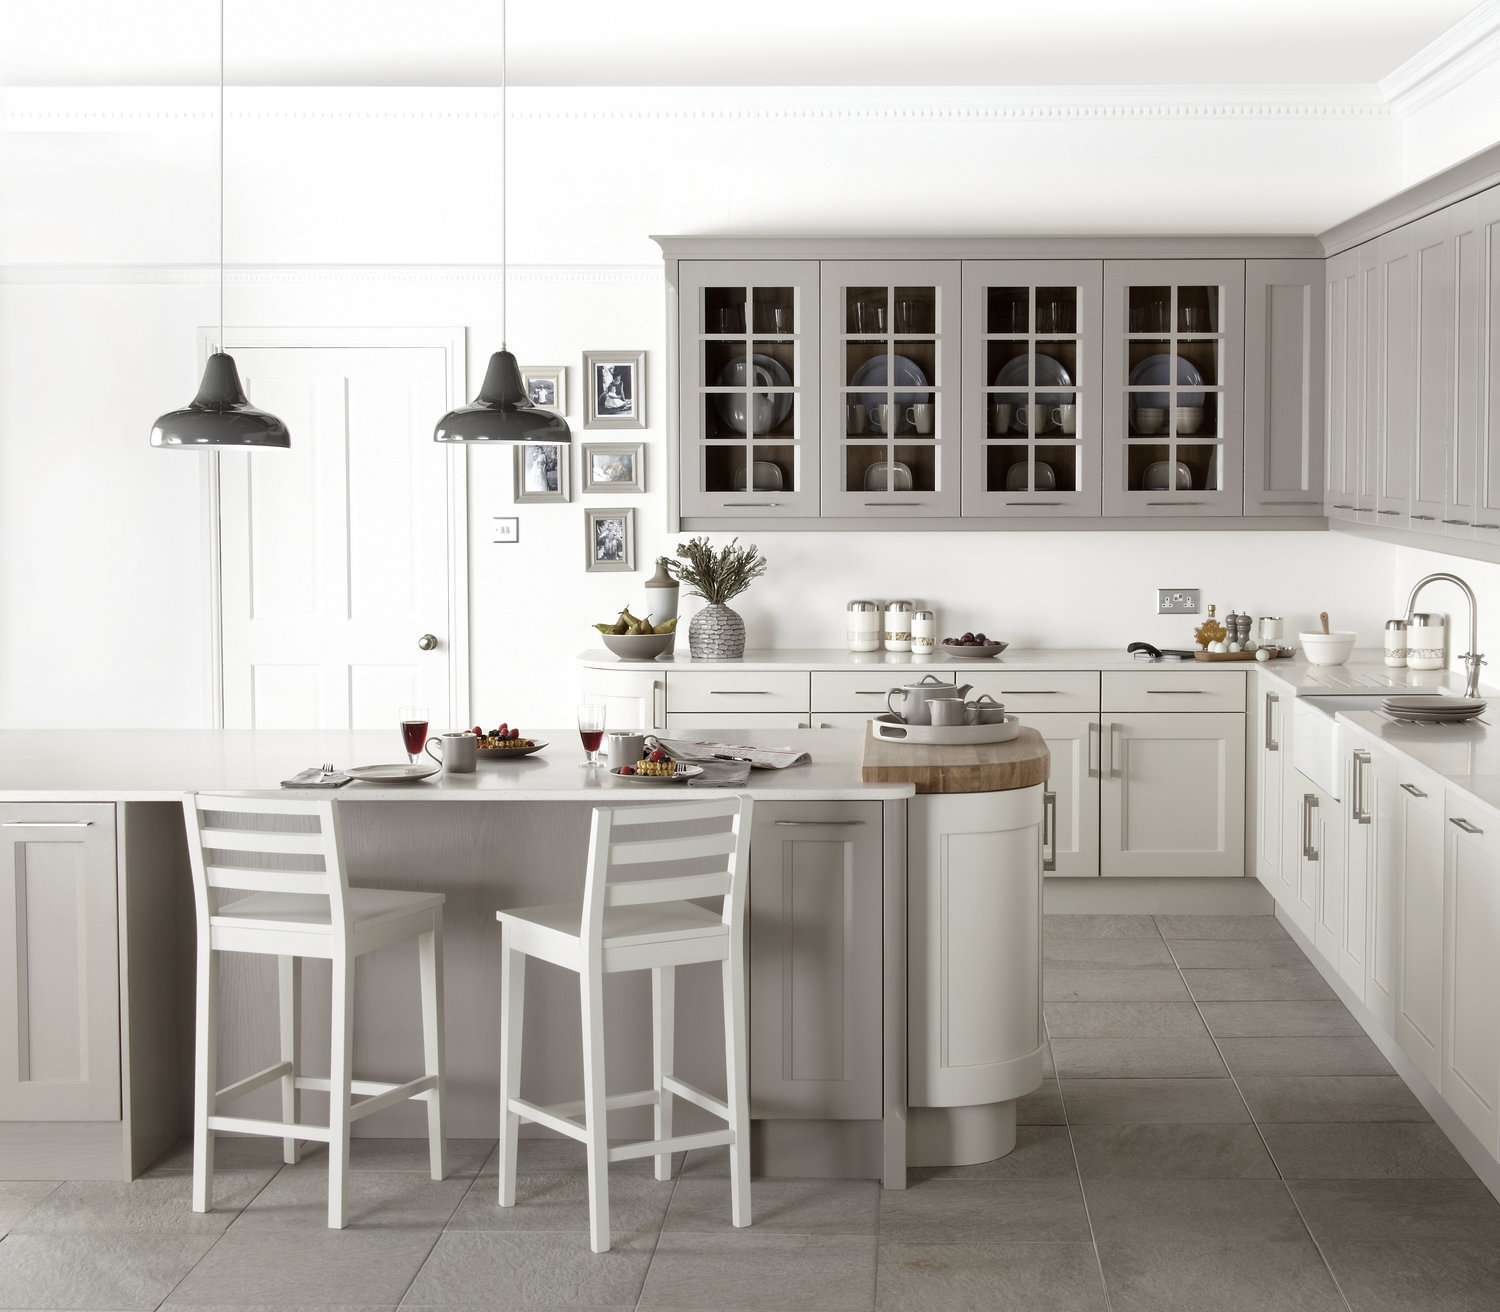 stylish, yet sophisticated, opt for dove grey and off white kitchen units.